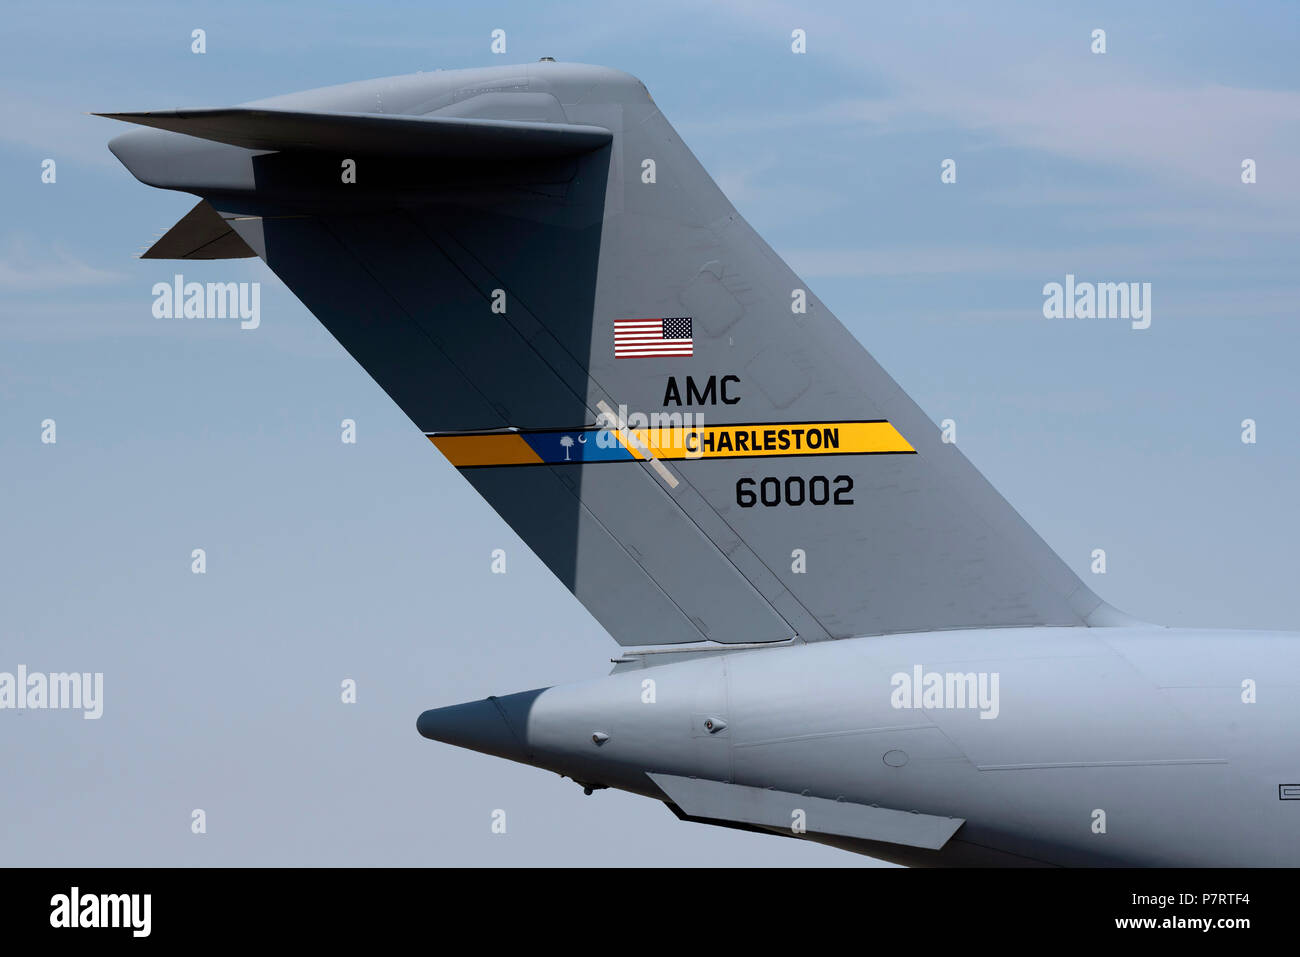 A USAF C 17 Globemaster  showing Charleston 60002 painted on the tail - Stock Image